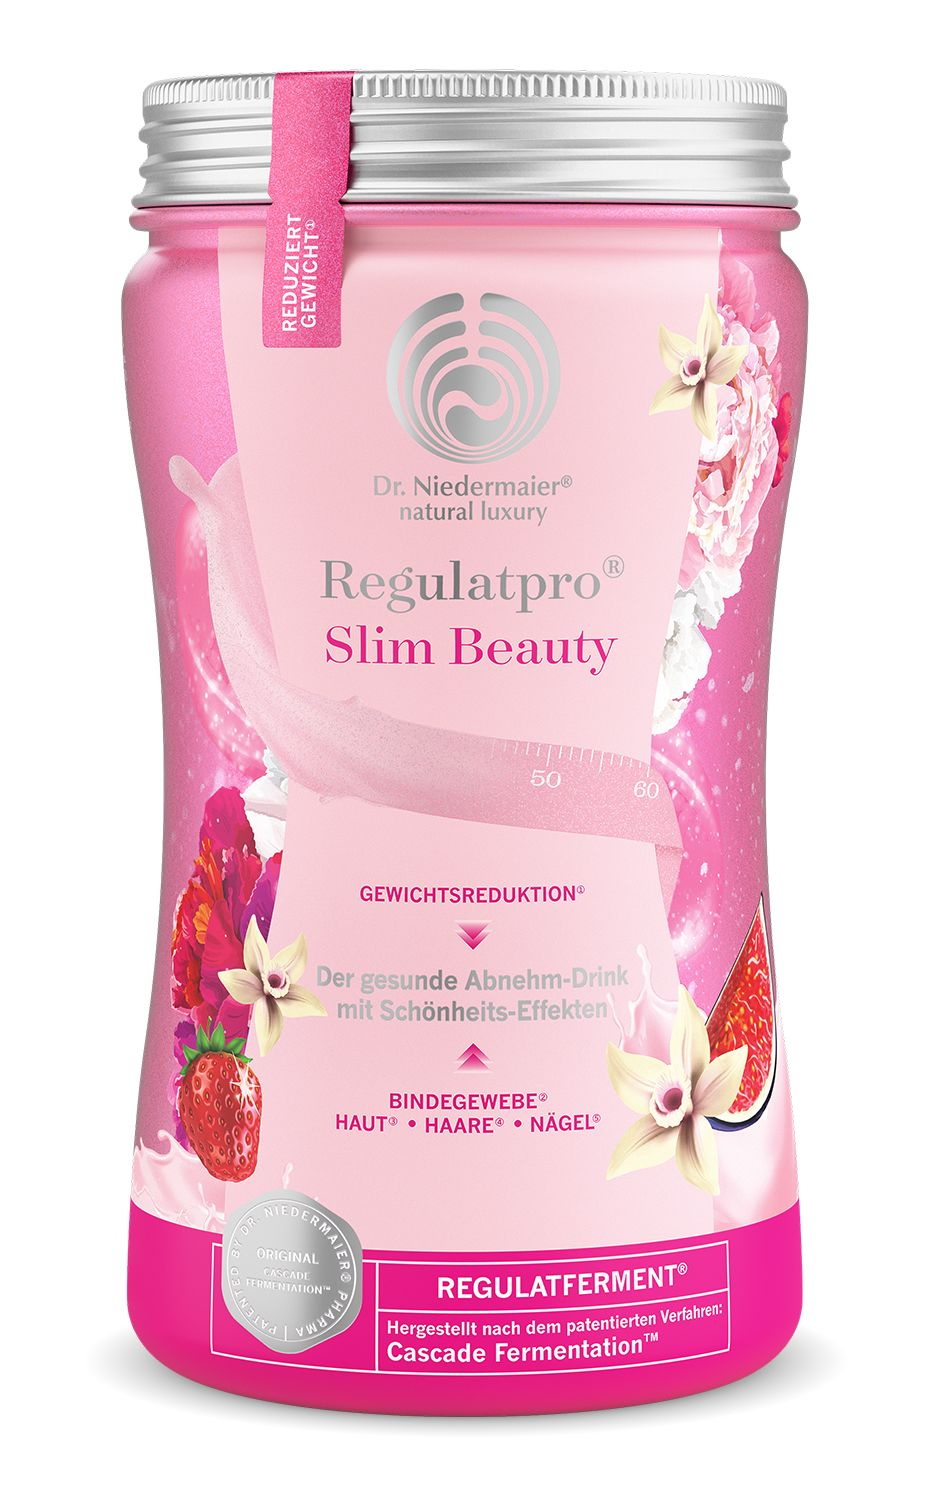 Regulatpro Slim Beauty (540g)